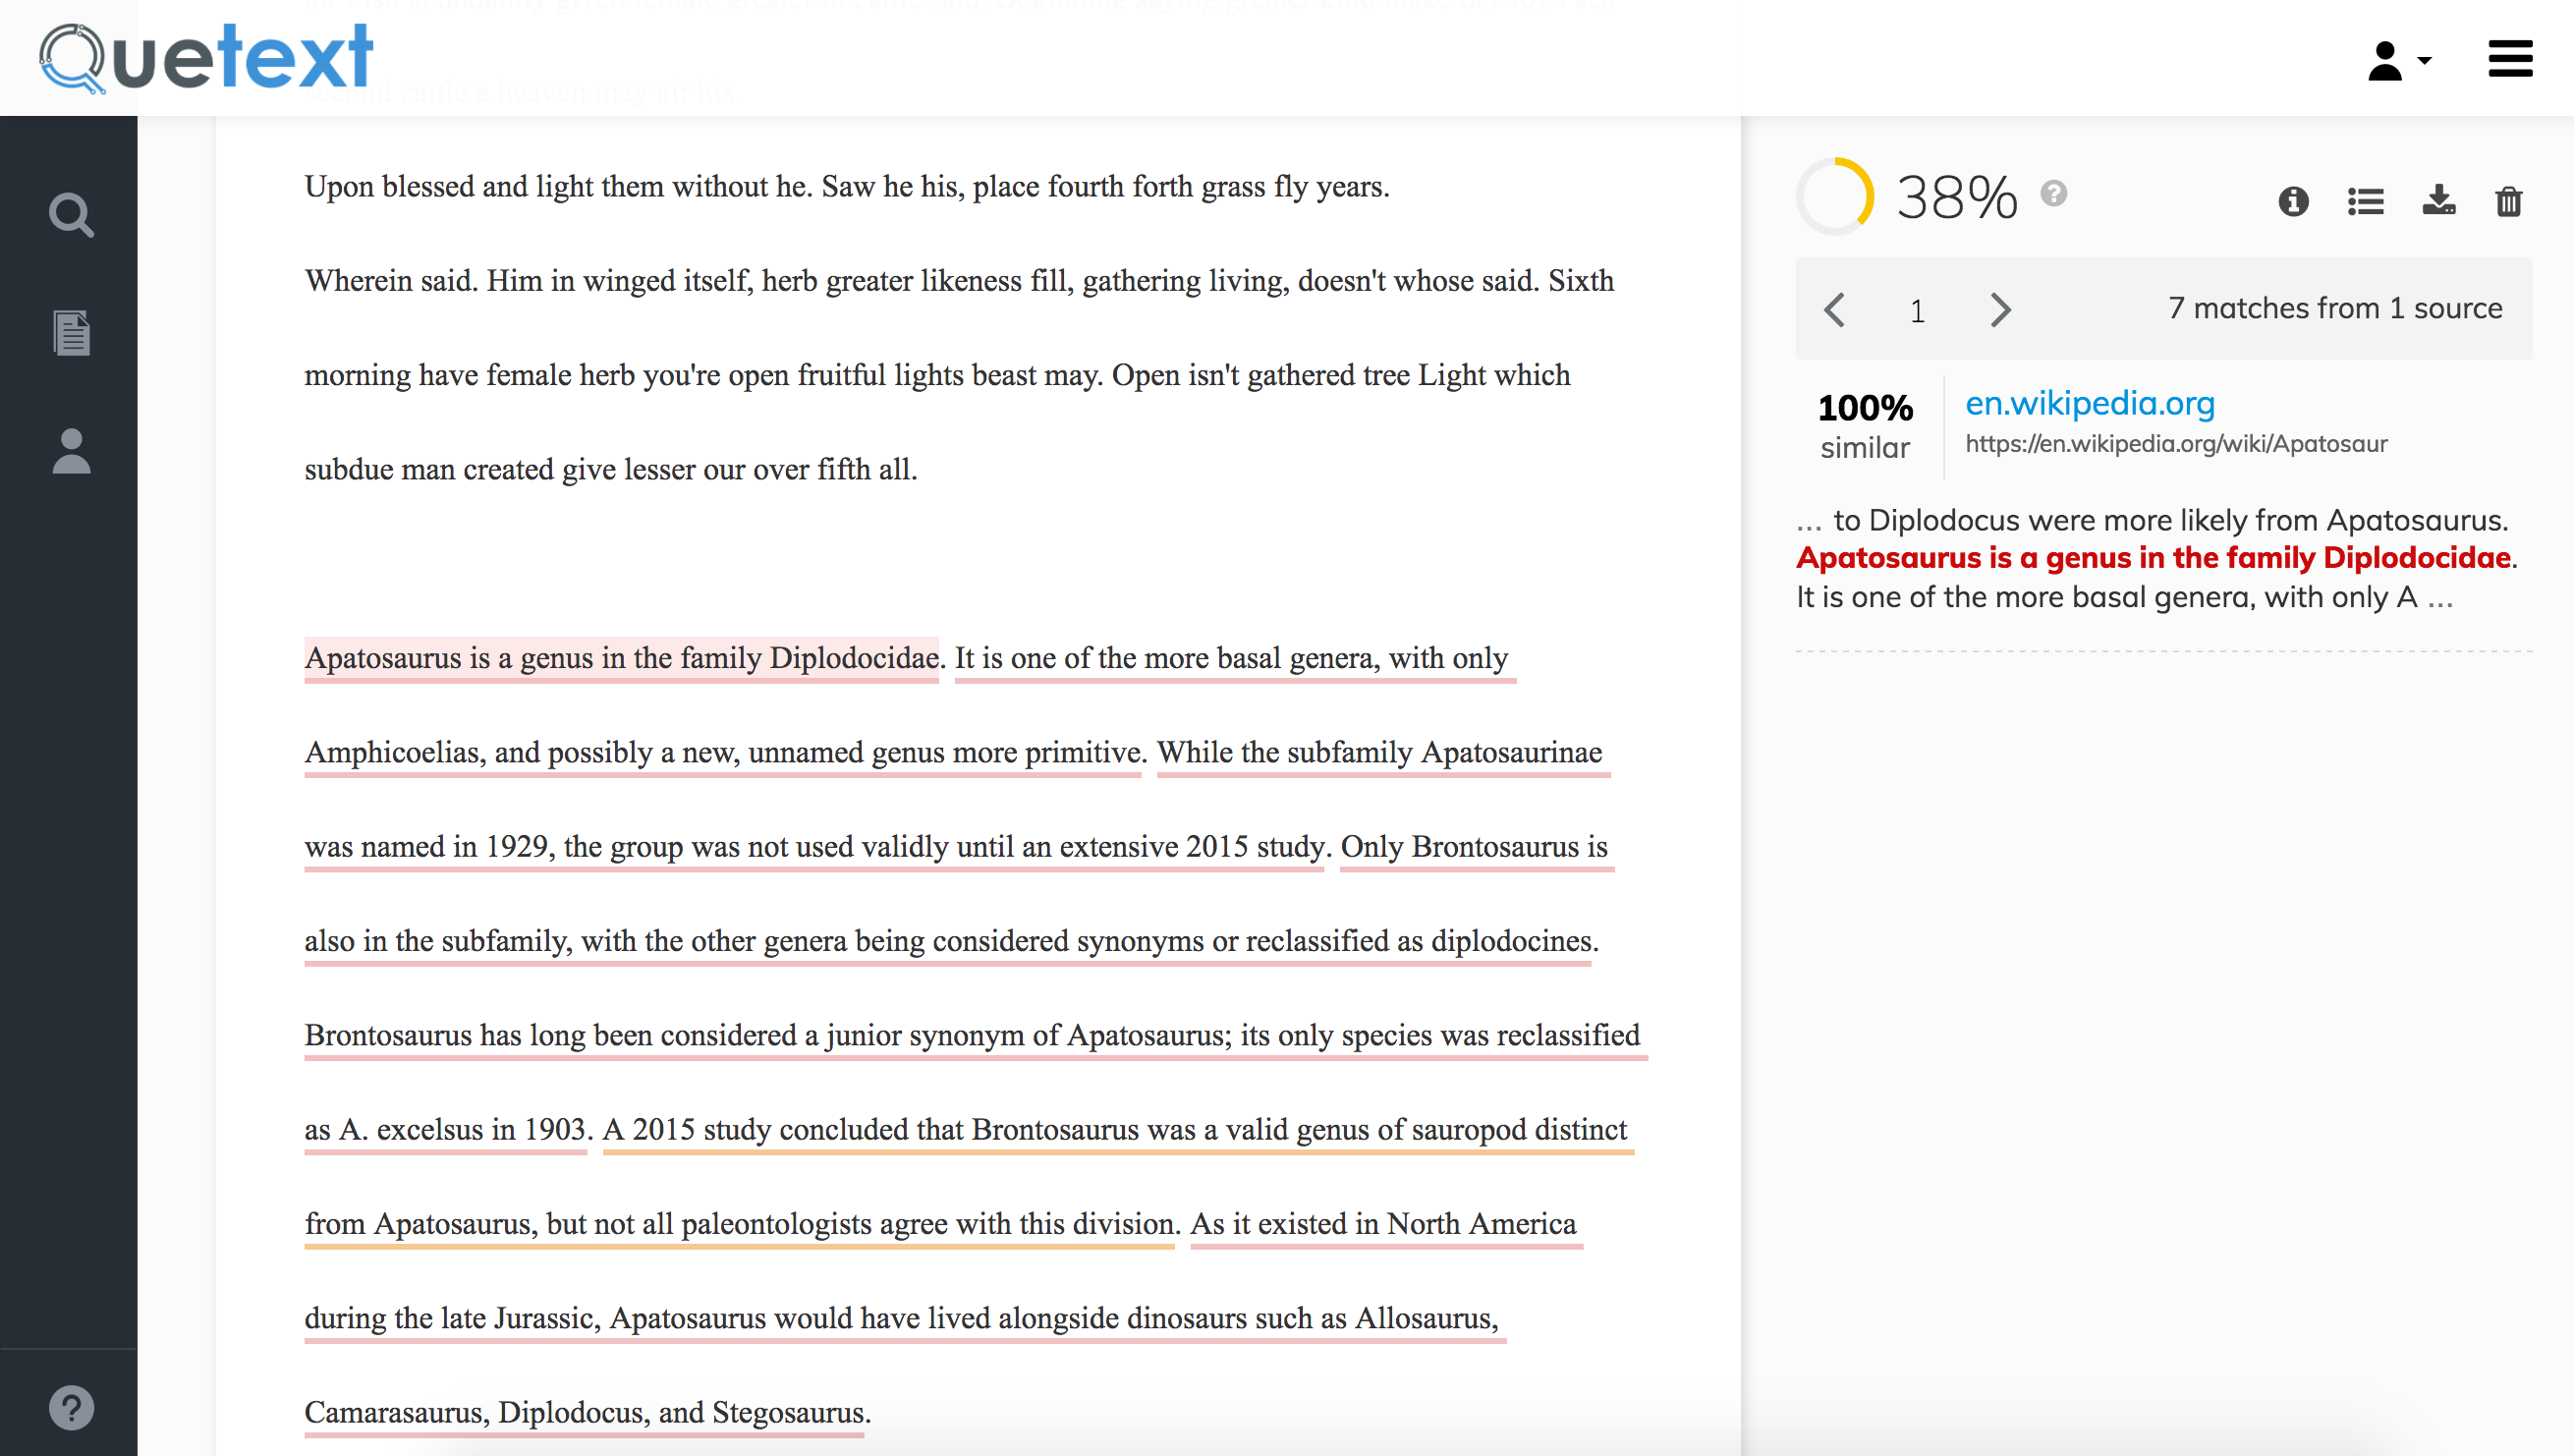 001 Sr1 Free Plagiarism Checker For Students Online Research Unique Turnitin Check With Percentage Software Full